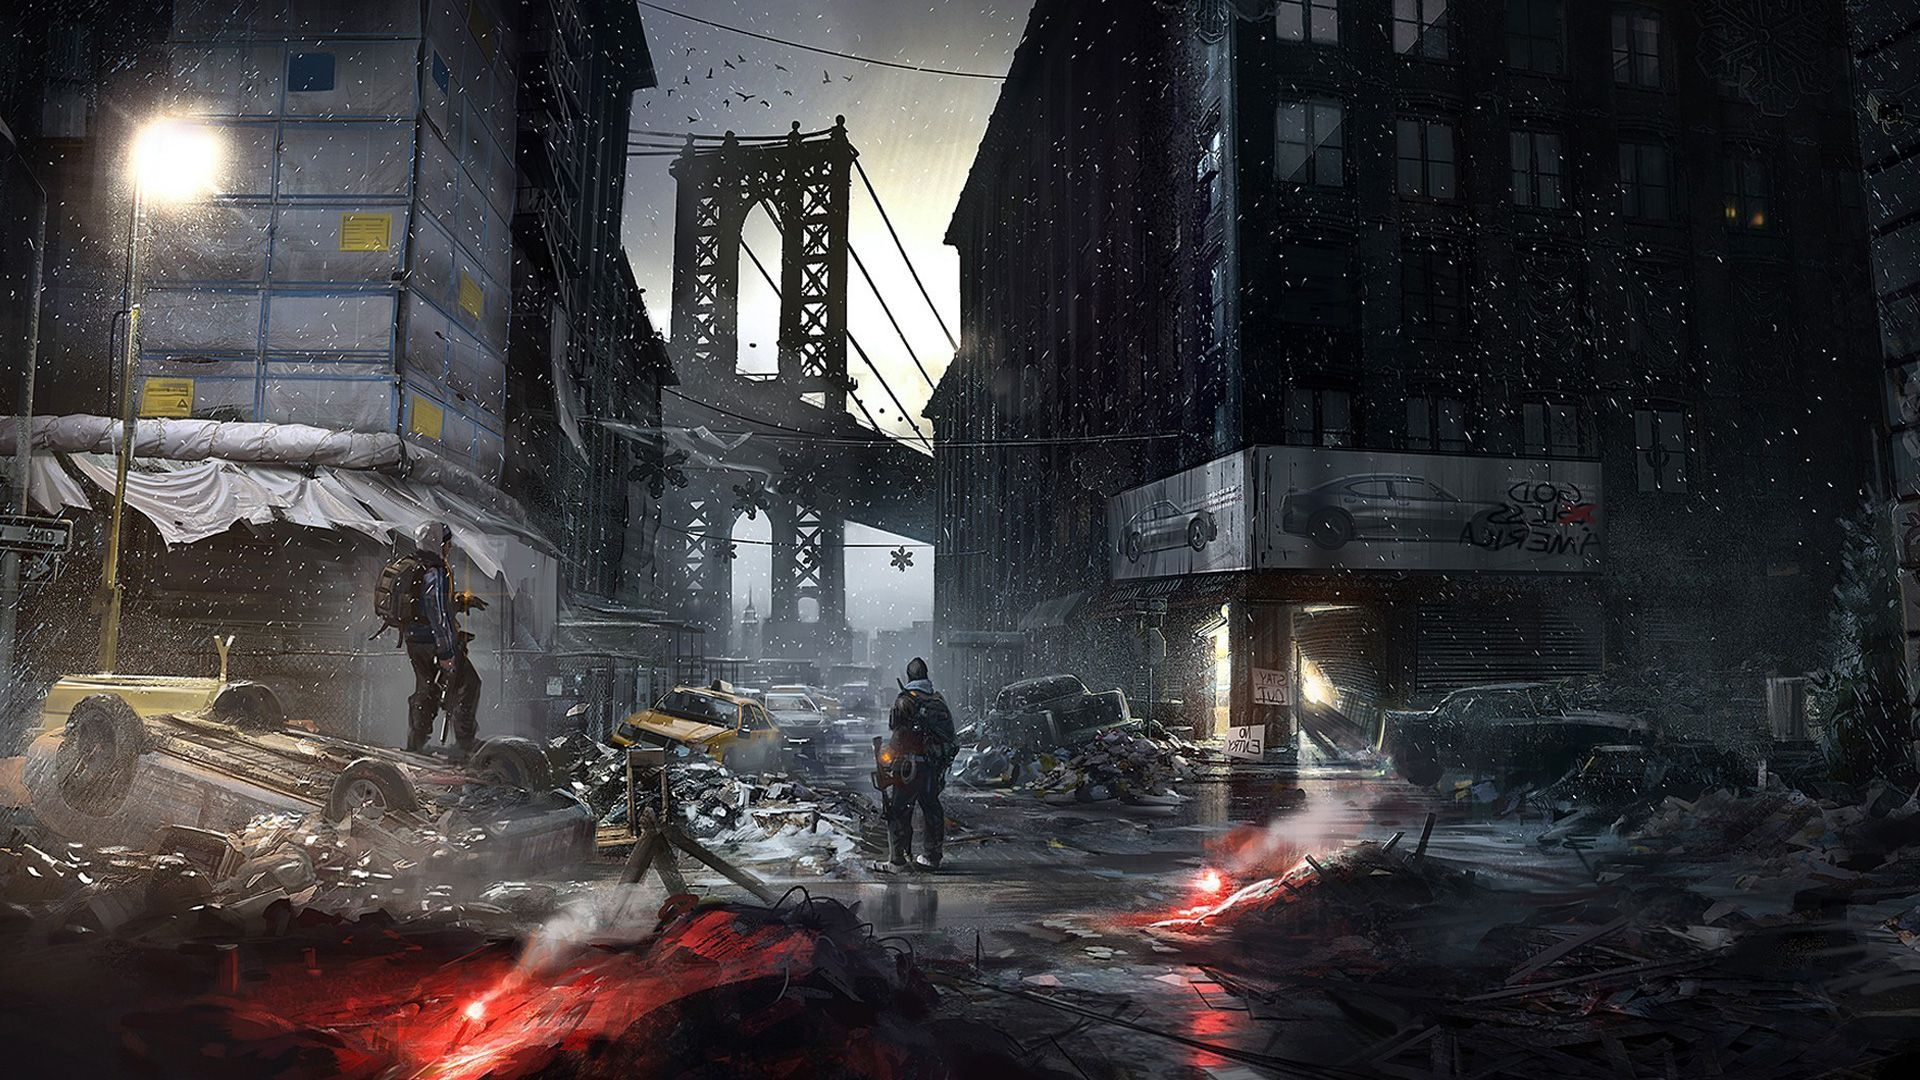 tom clancys the division game hd wallpaper 19201080 1564 Svet 1920x1080